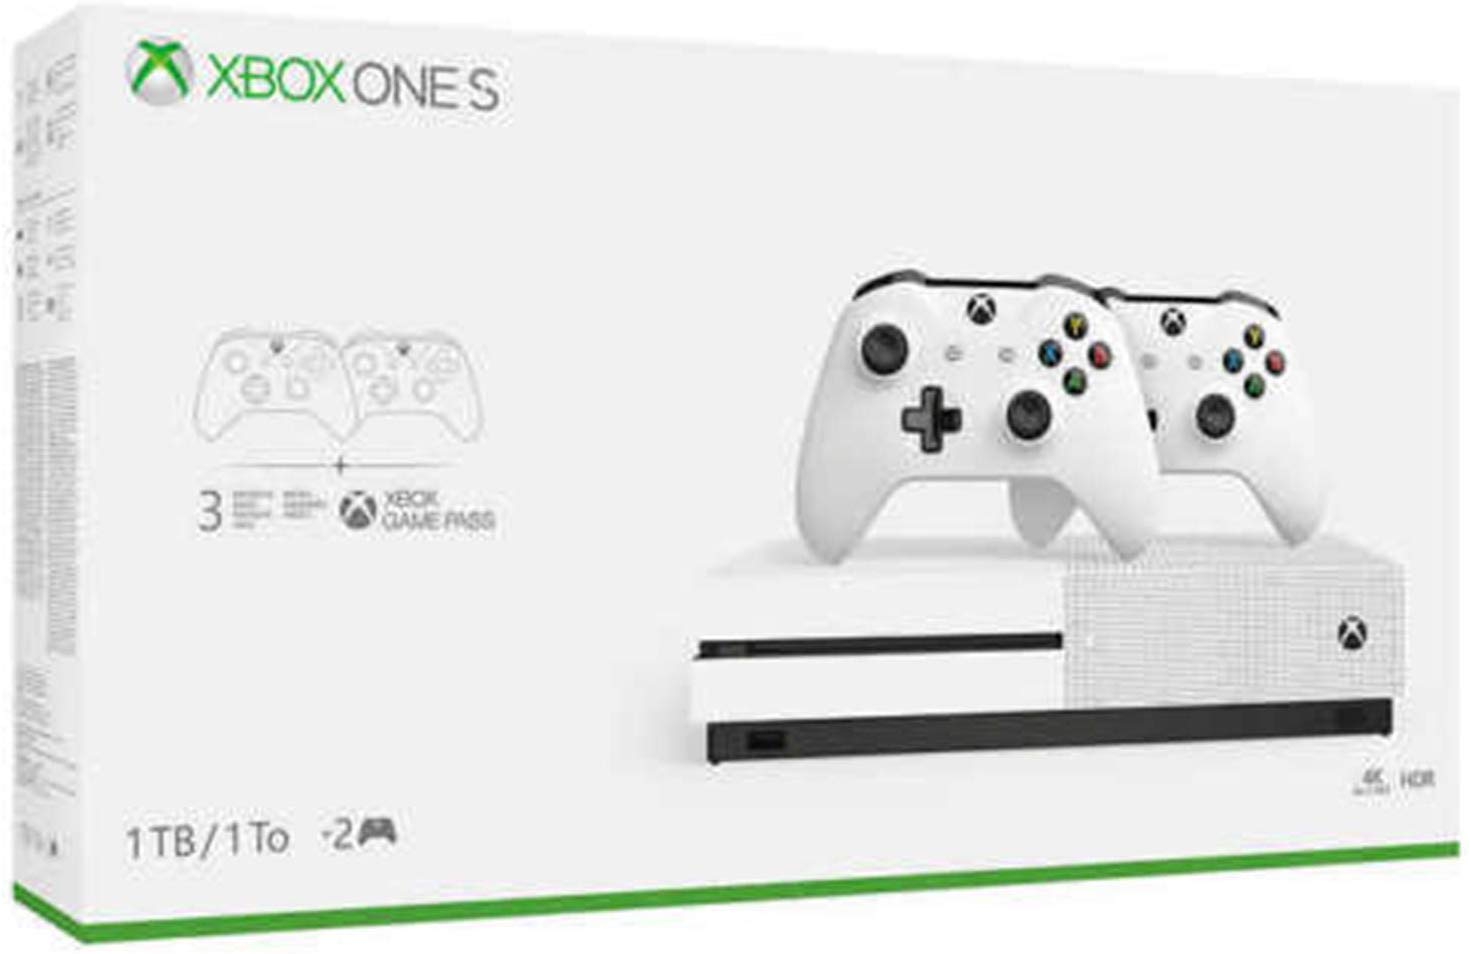 Xbox One S Two Controller Bundle (1TB) Includes Xbox One S, 2 Wireless Controllers, 14-day Xbox Live Gold and Game Pass Trial (Renewed)